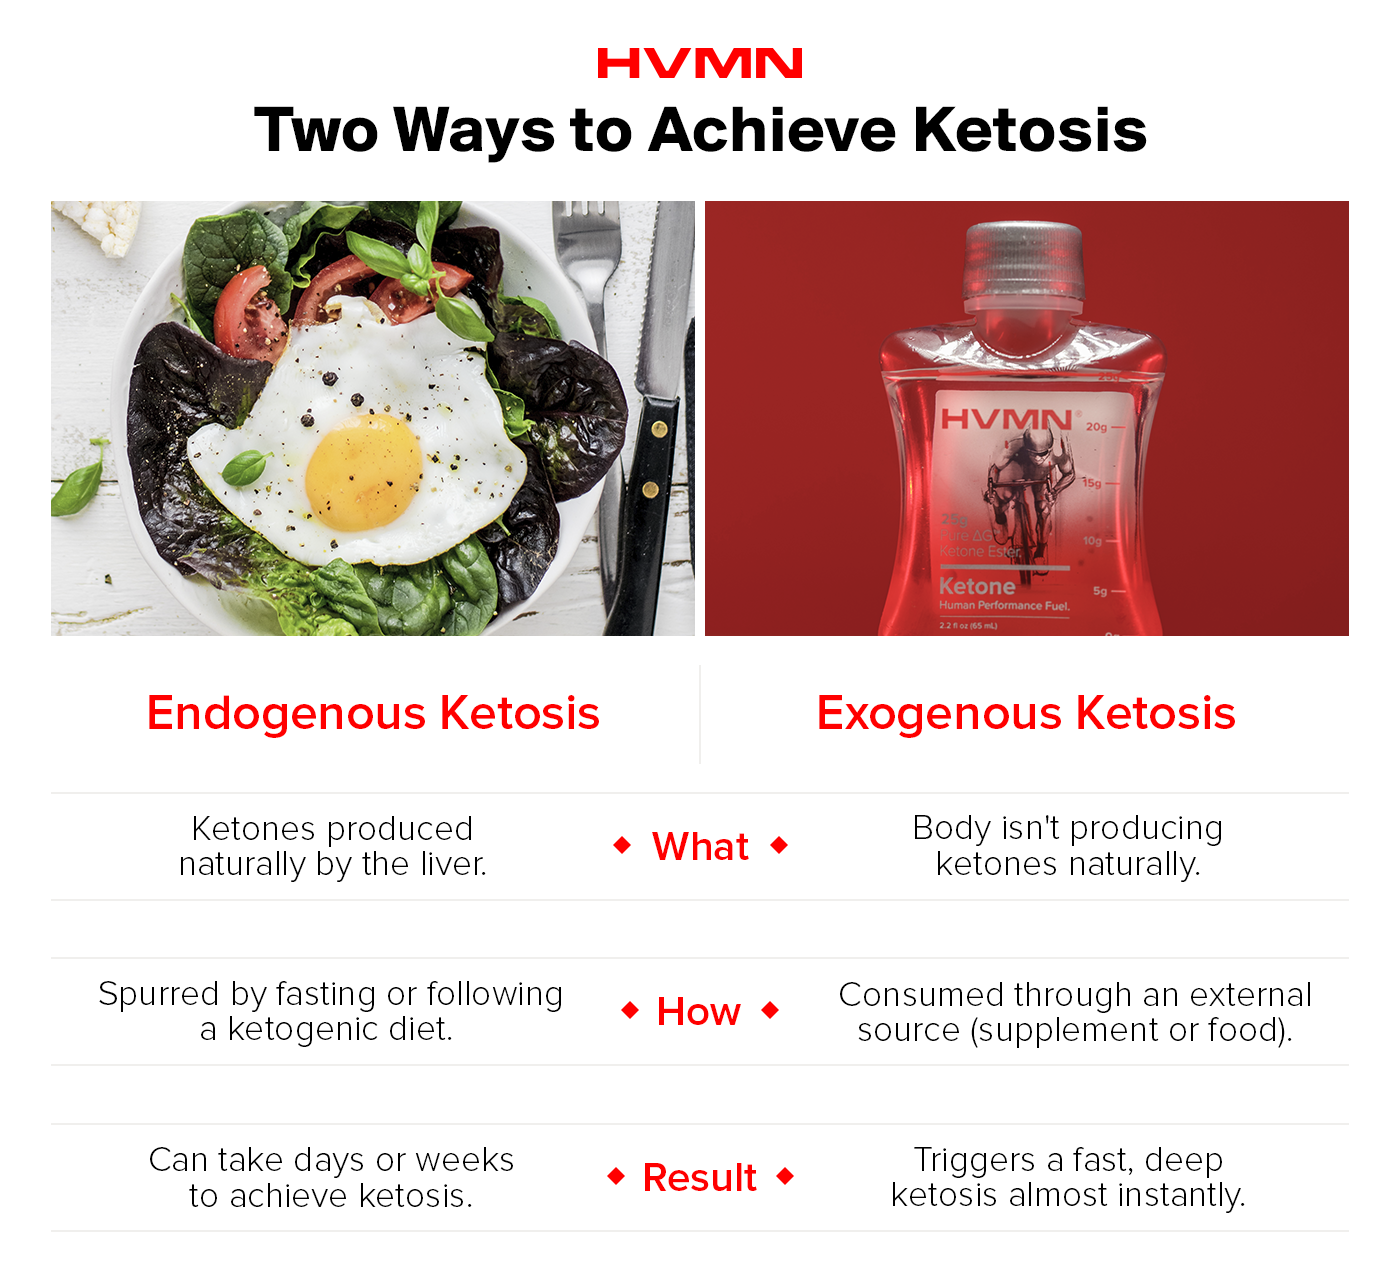 an image of a salad to showcase how to achieve endogenous ketosis, and an image of HVMN Ketone to show exogenous ketosis